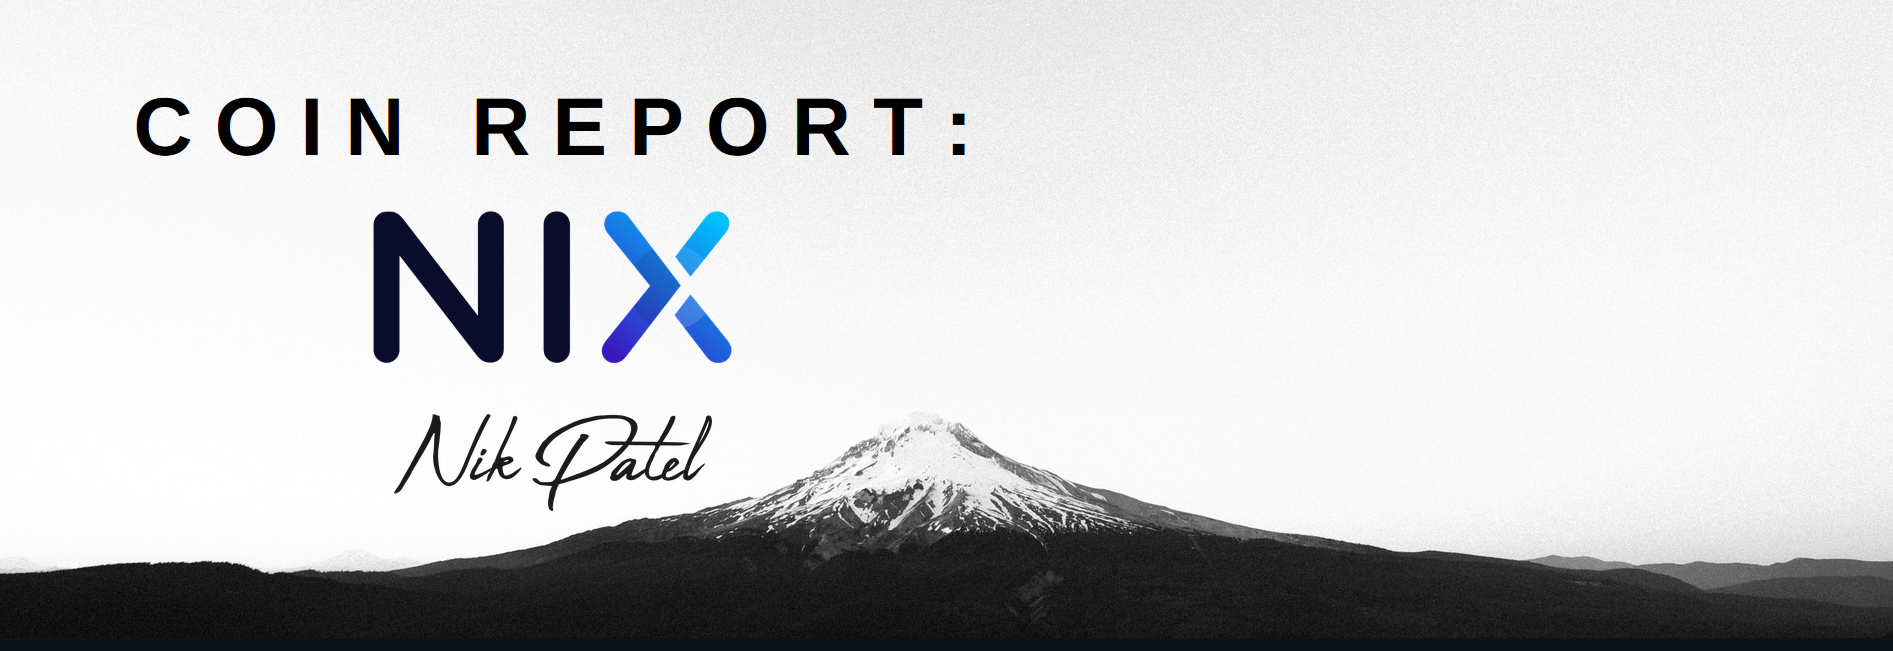 Coin Report #30: NIX